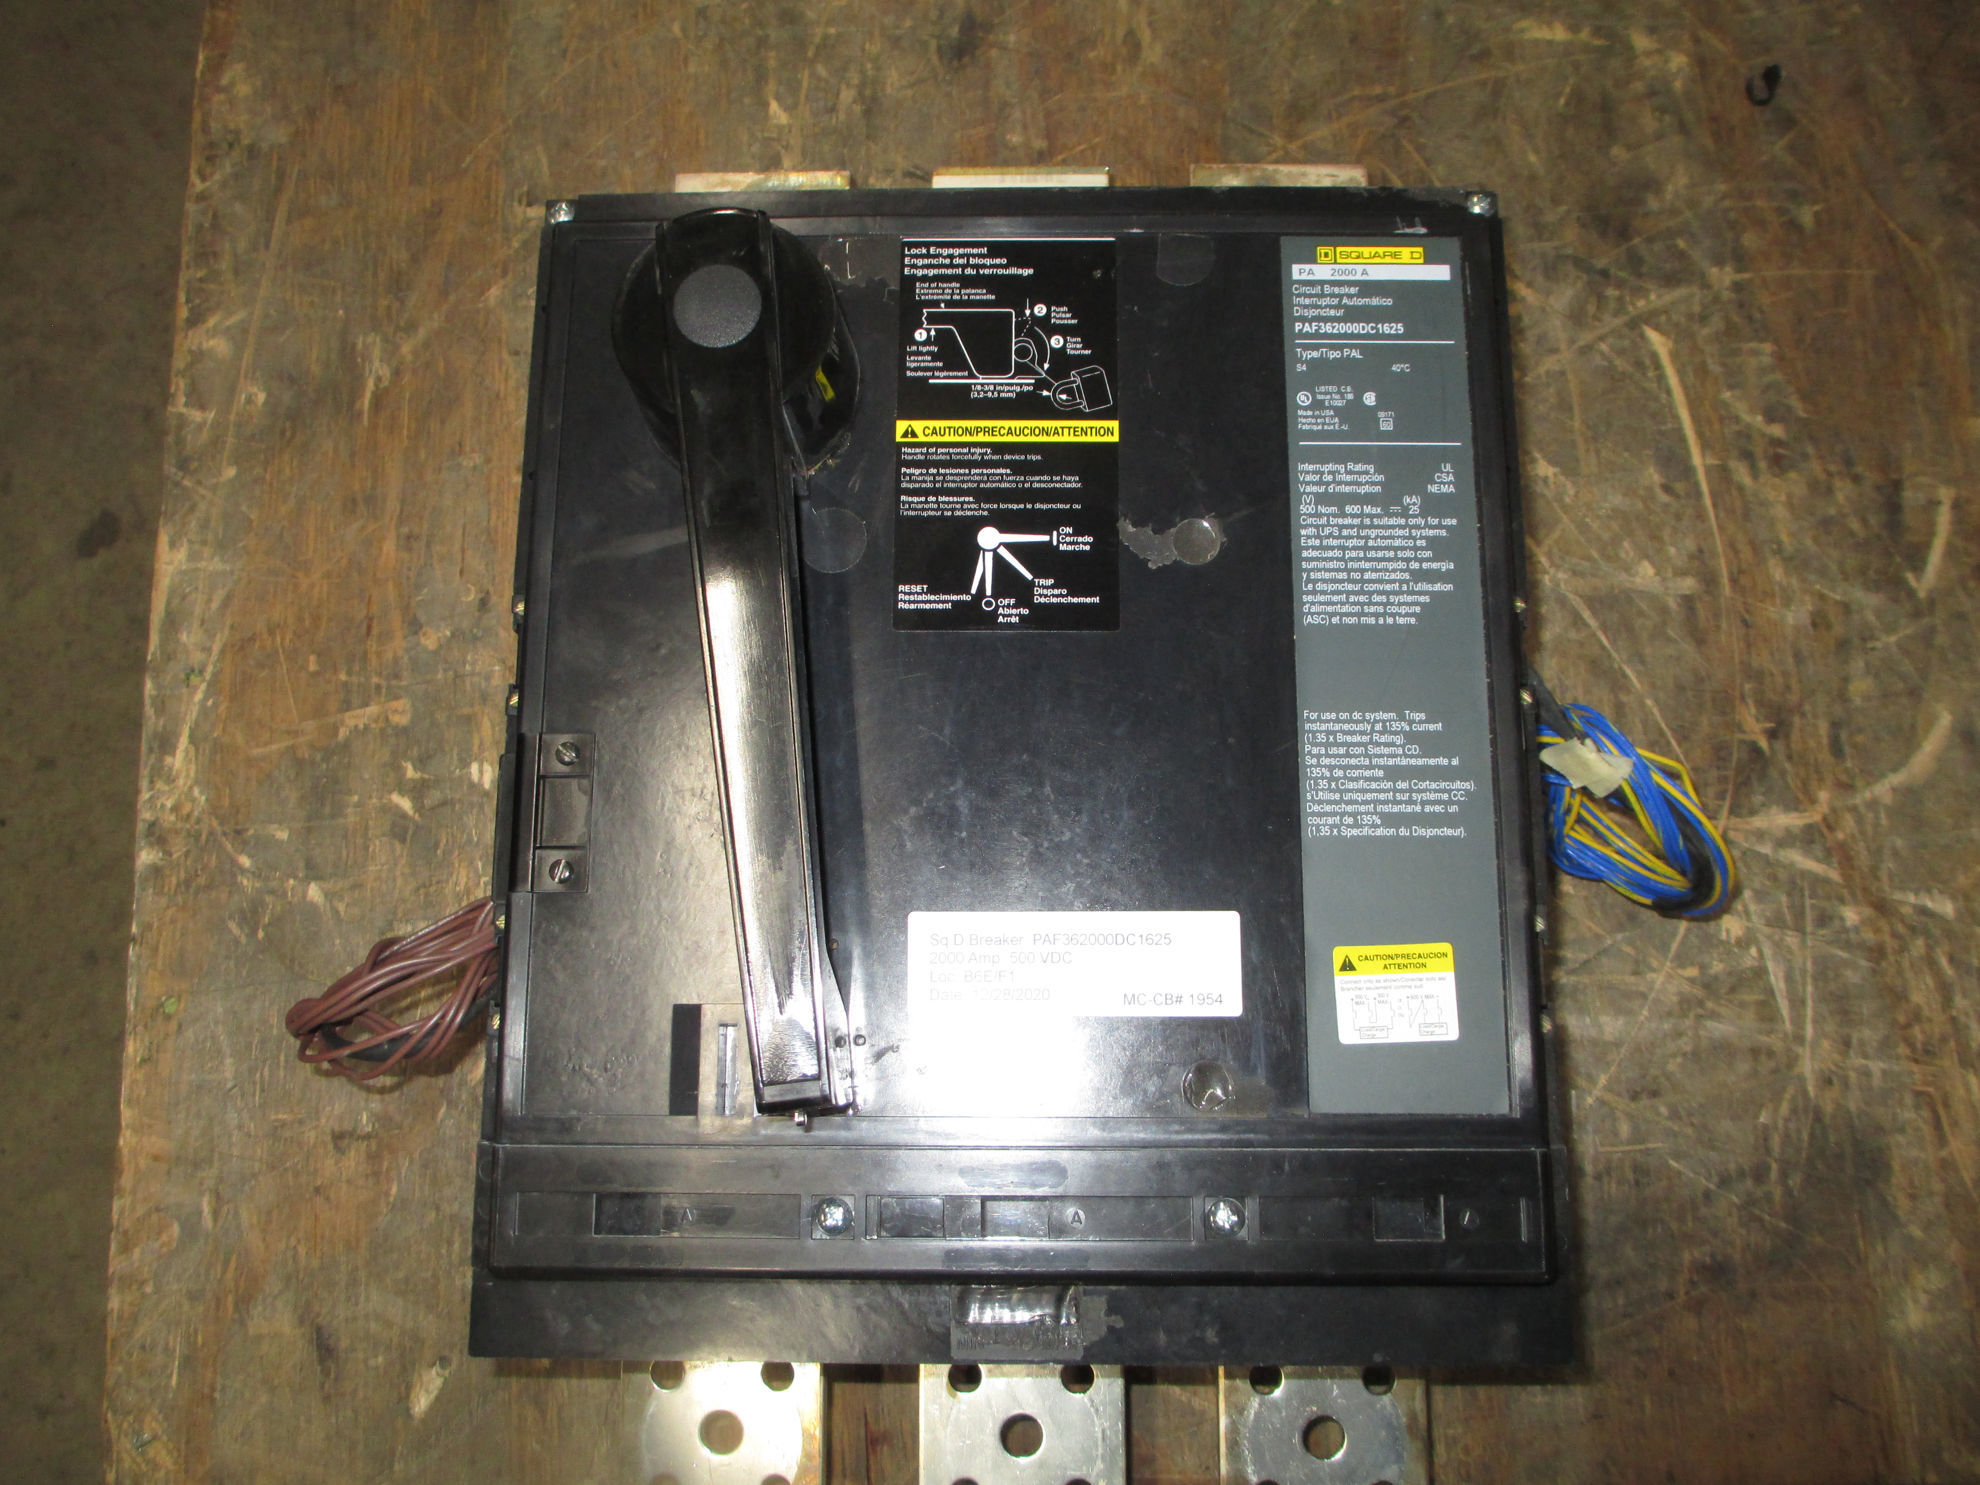 Picture of Square D PAF362000DC1625 Circuit Breaker 2000 Amp 500 Volt DC W/ Auxiliary Switch MO/FM